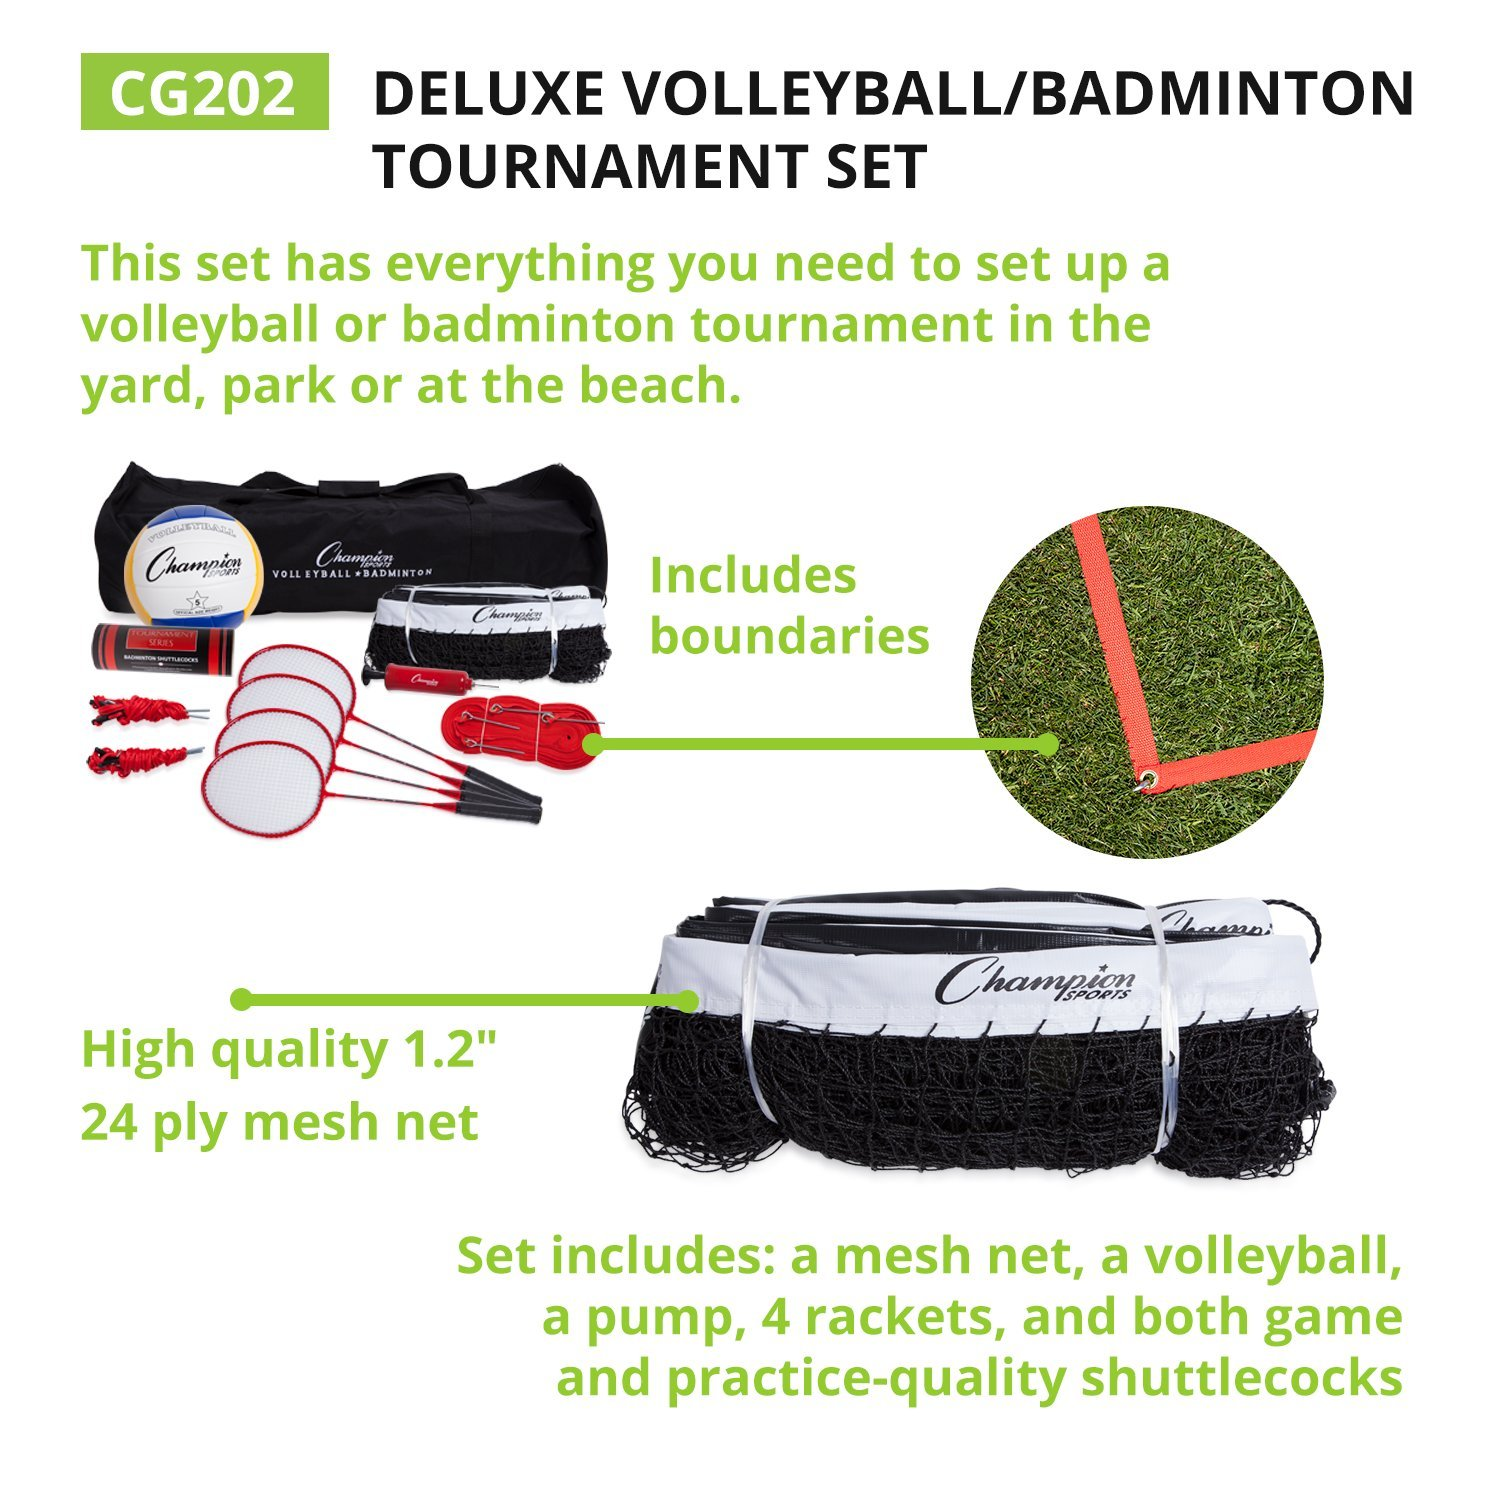 Champion Sports Volleyball & Badminton Set: Net, Poles, Ball, Rackets & Shuttlecocks - Portable Equipment for Outdoor, Lawn, Beach & Tournament Games by Champion Sports (Image #2)